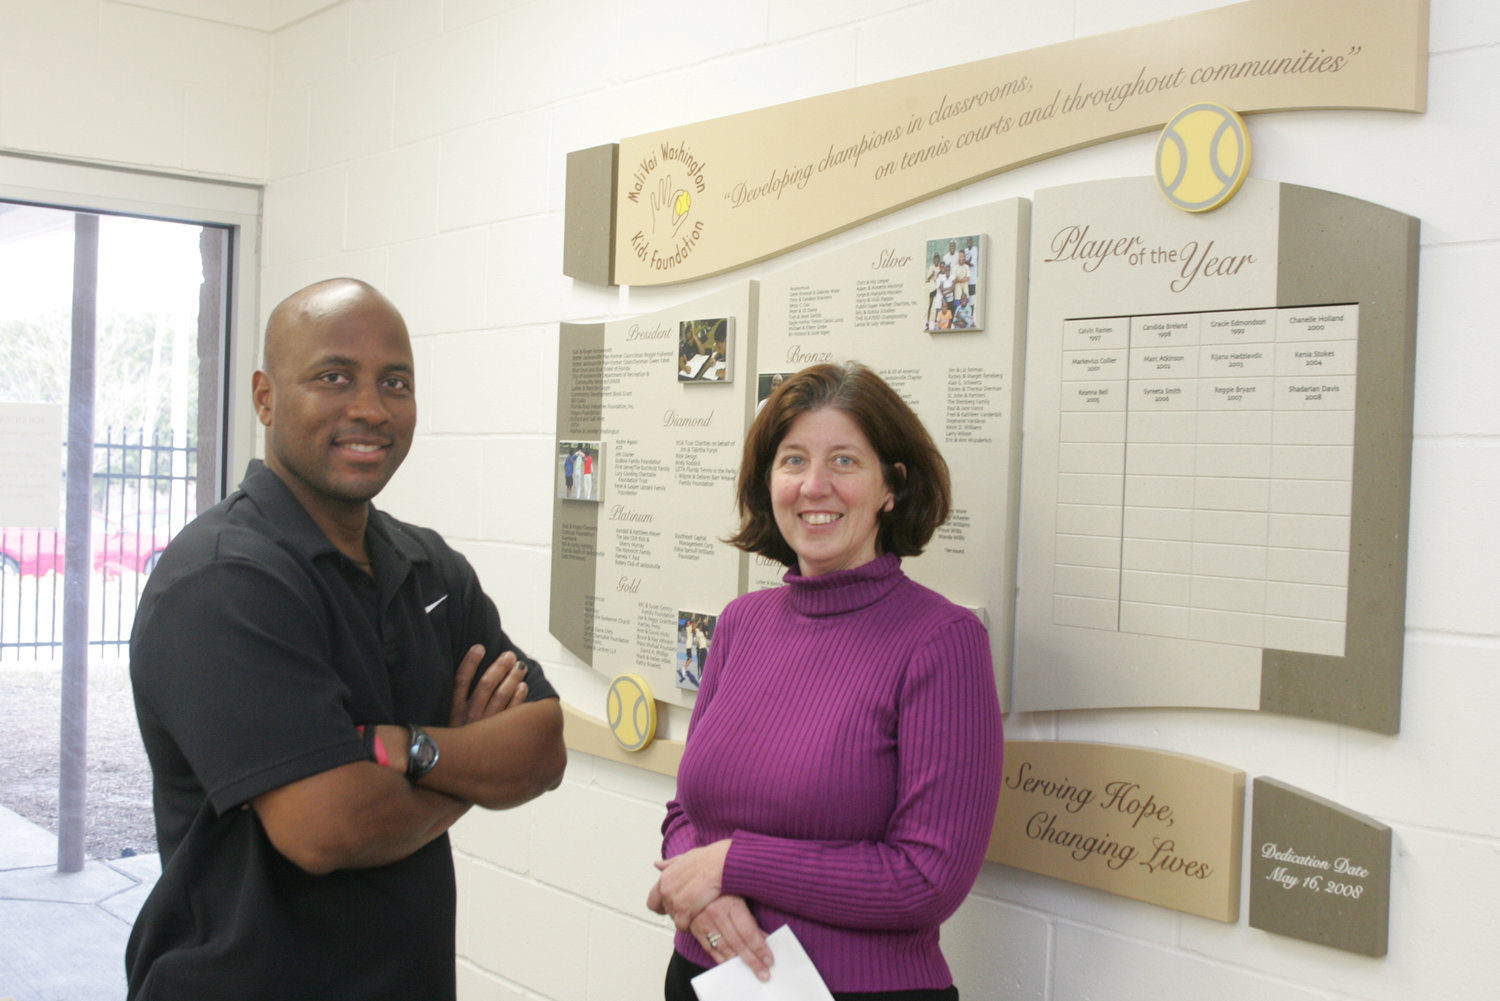 MWYF founder Mal Washington and Executive Director Terri Florio at the new Youth Center in 2008.